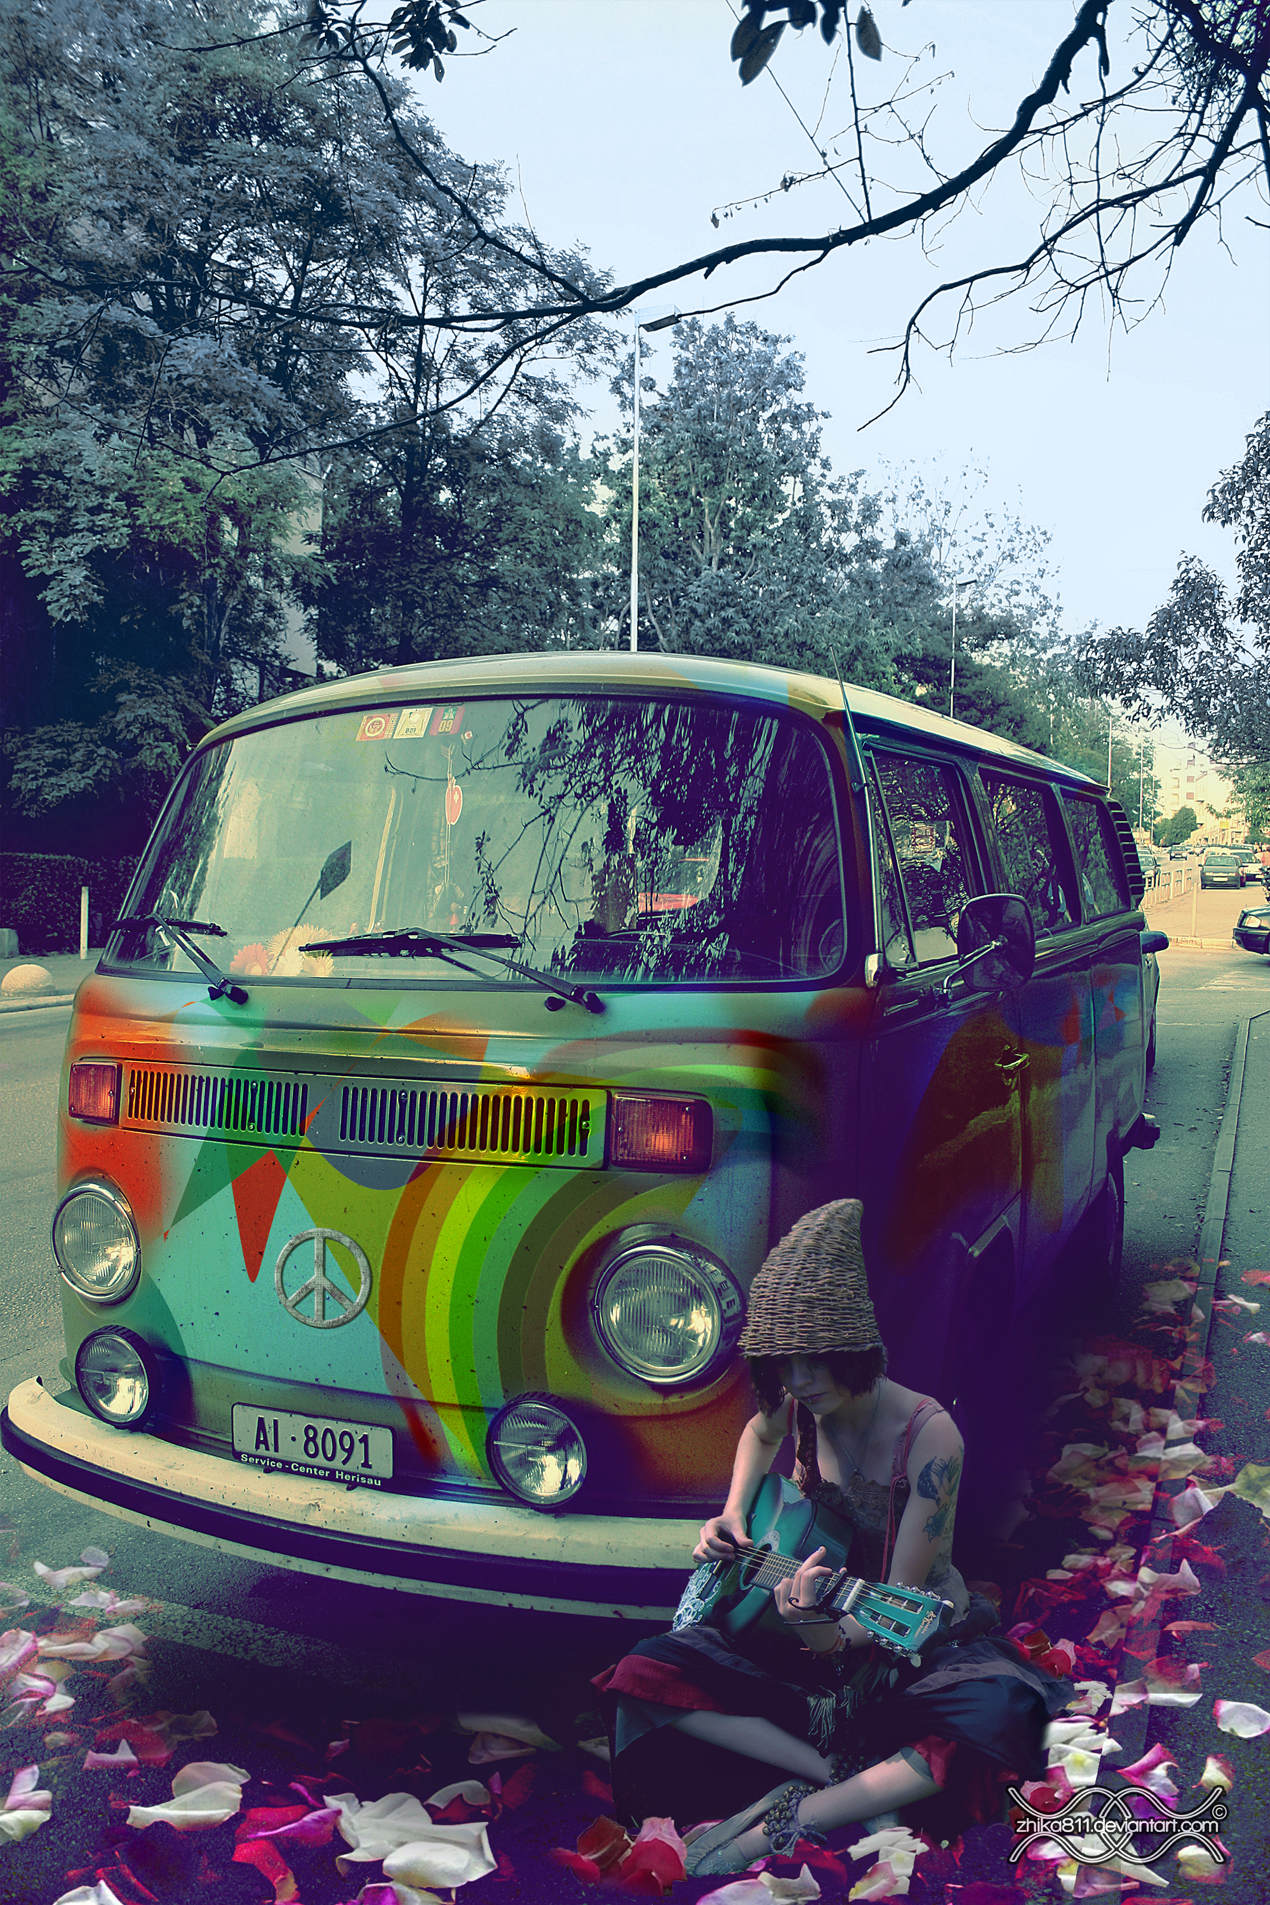 Iphone 6 wallpaper tumblr cars - And Wallpapers Cool Psychedelic Hippy Stock Alive In Hippie Based On